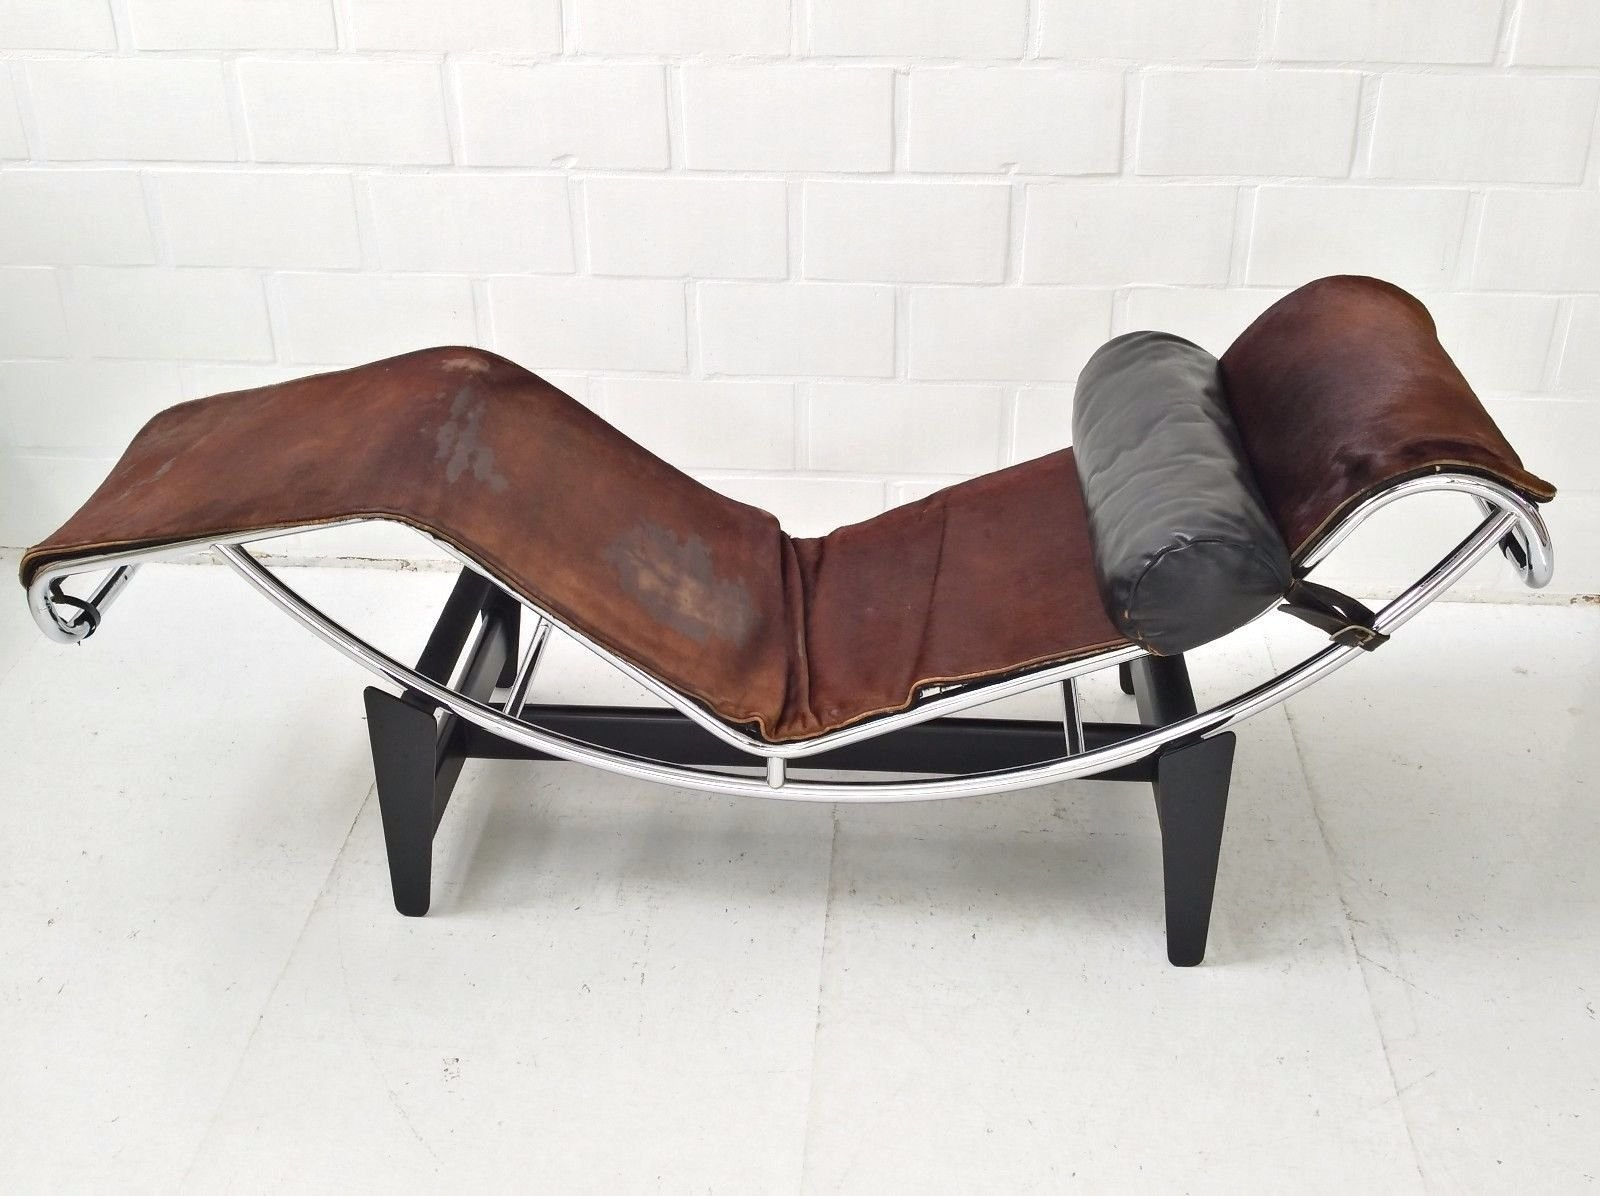 Chaise longue early first 550 lc4 par le corbusier - Chaise longue en anglais ...